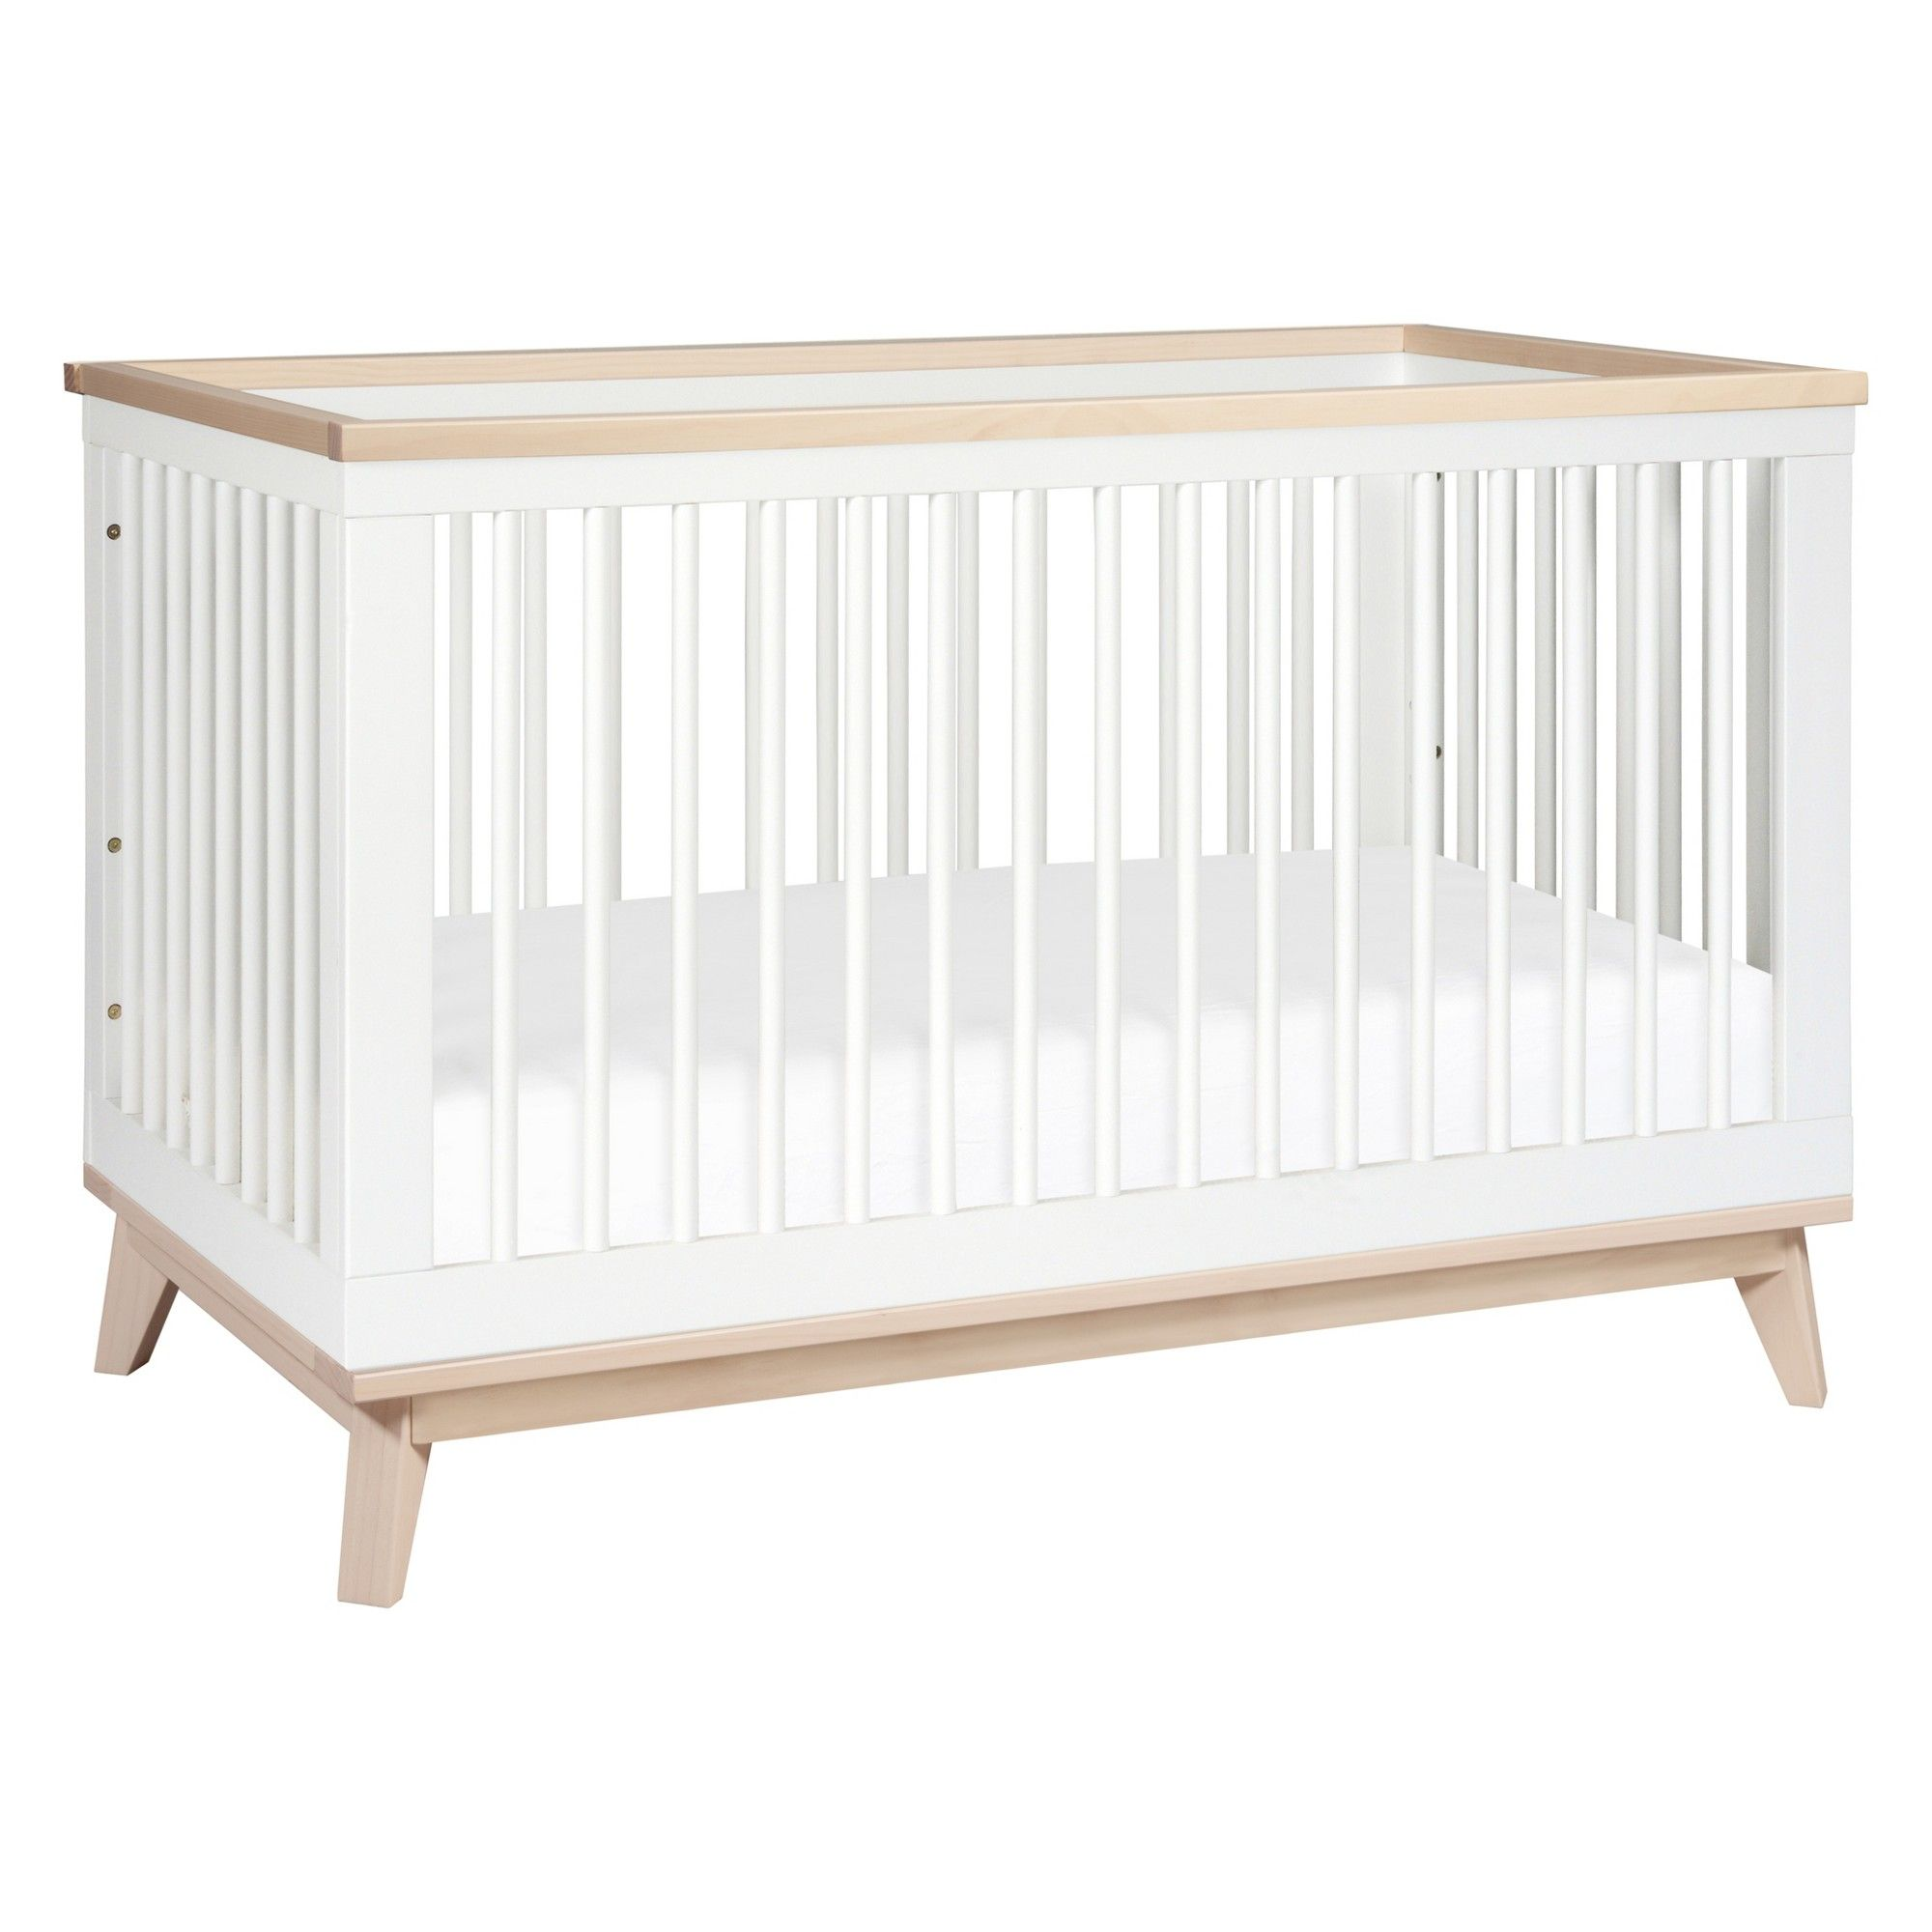 Babyletto Scoot 3-in-1 Convertible Crib With Toddler Rail